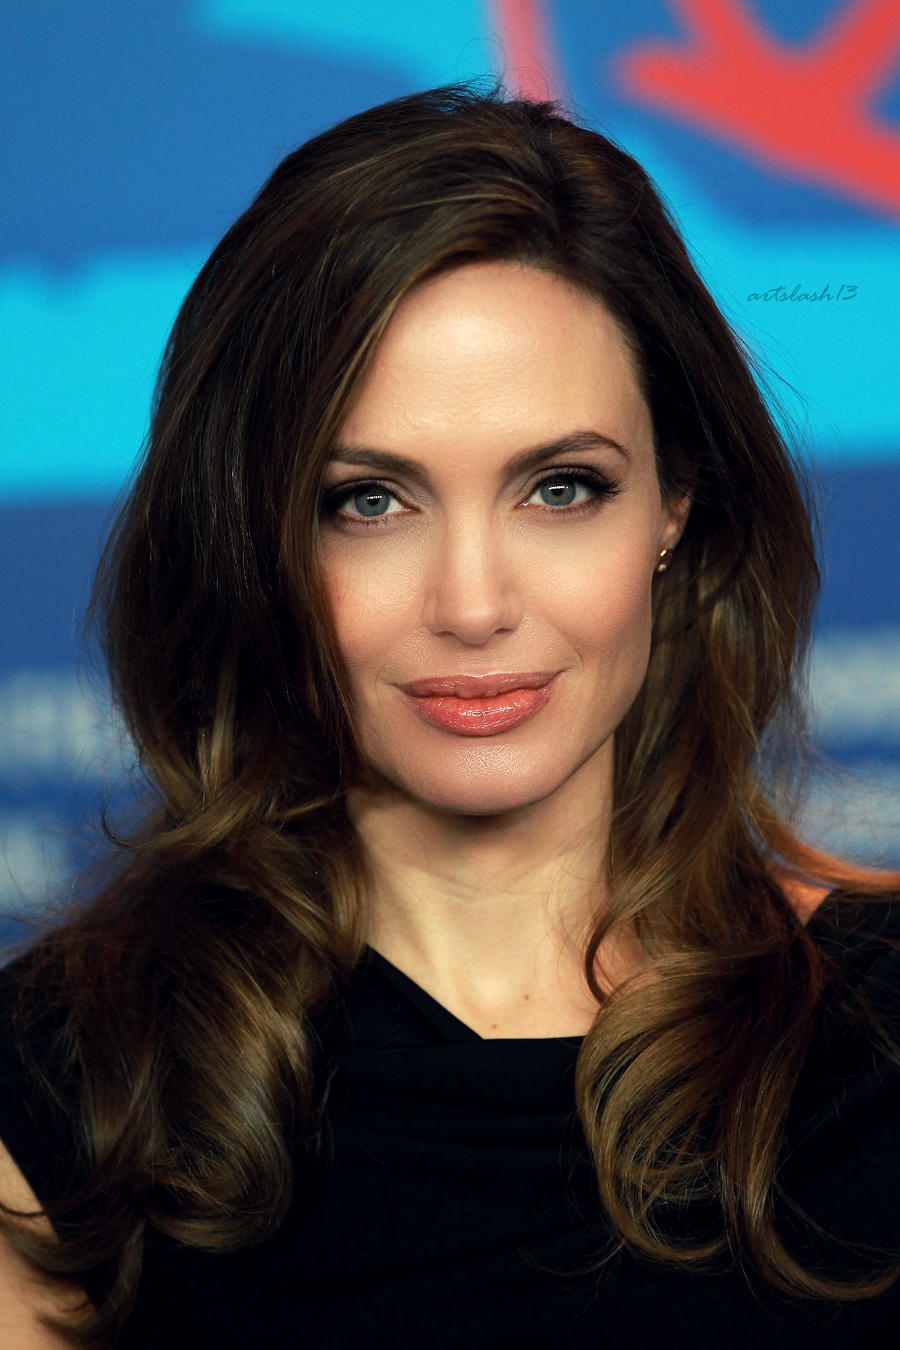 Angelina Jolie 11 by ArtSlash13